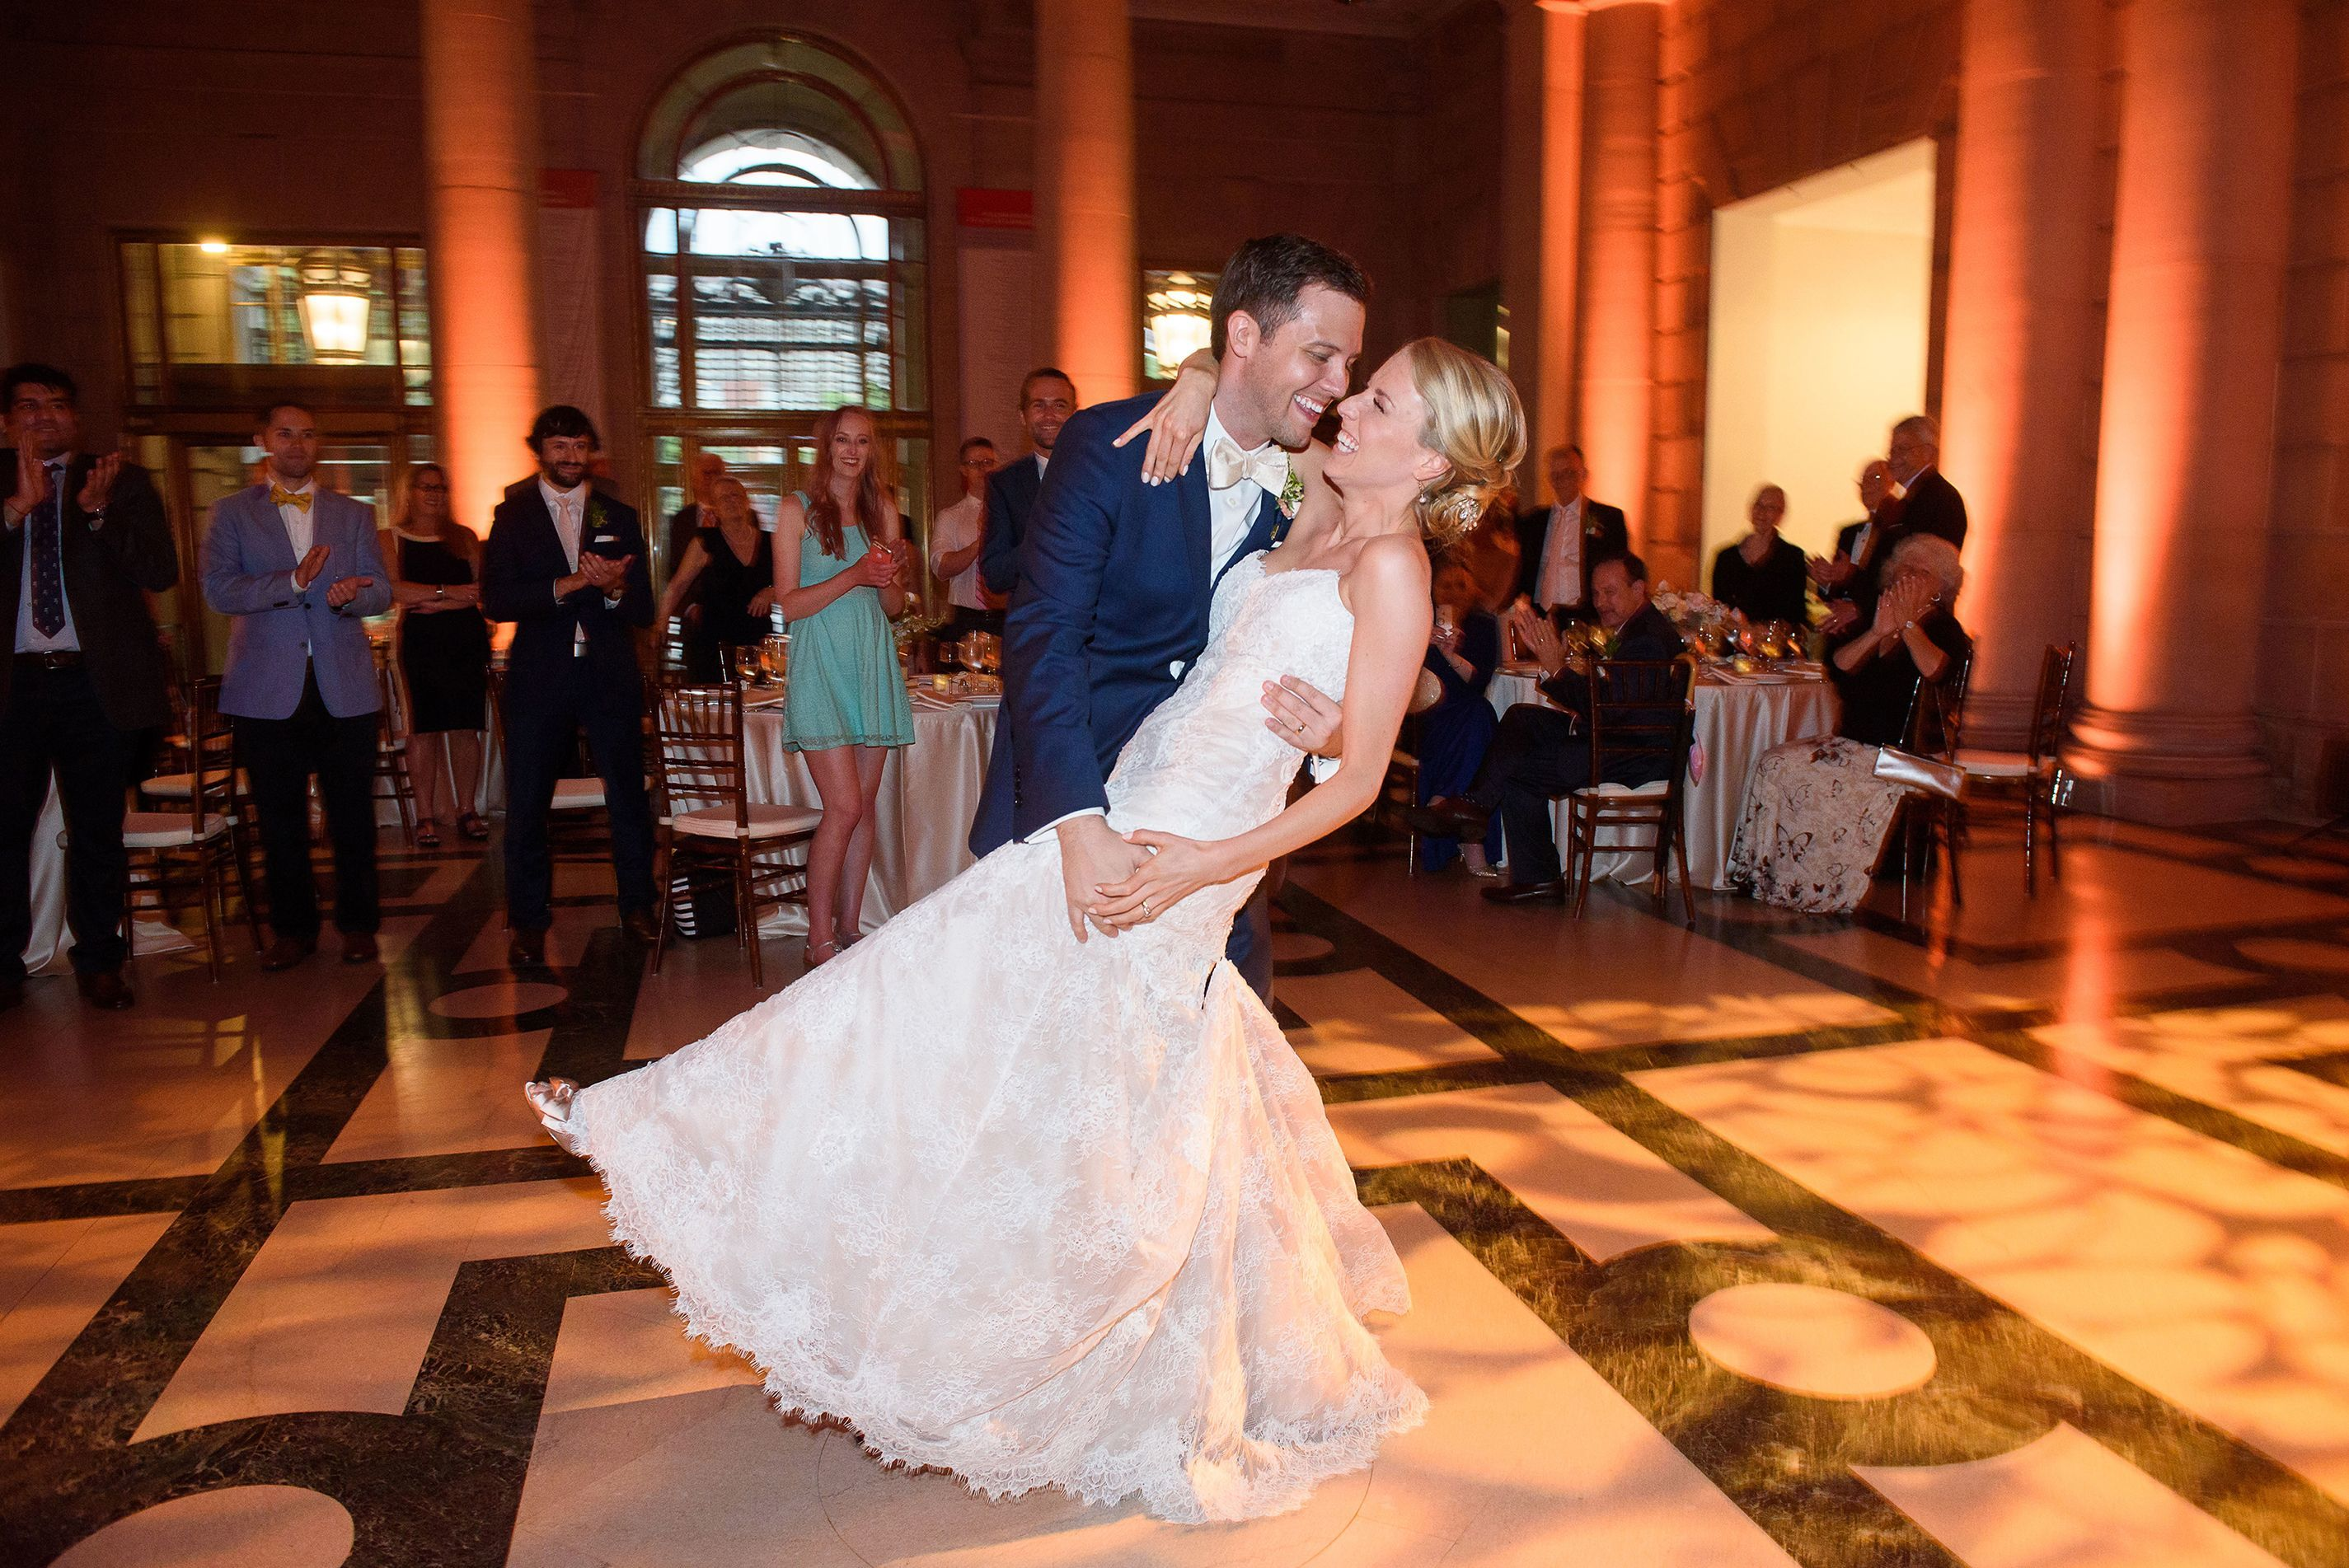 James Morse and Lauren Miller during their first dance as husband and wife.